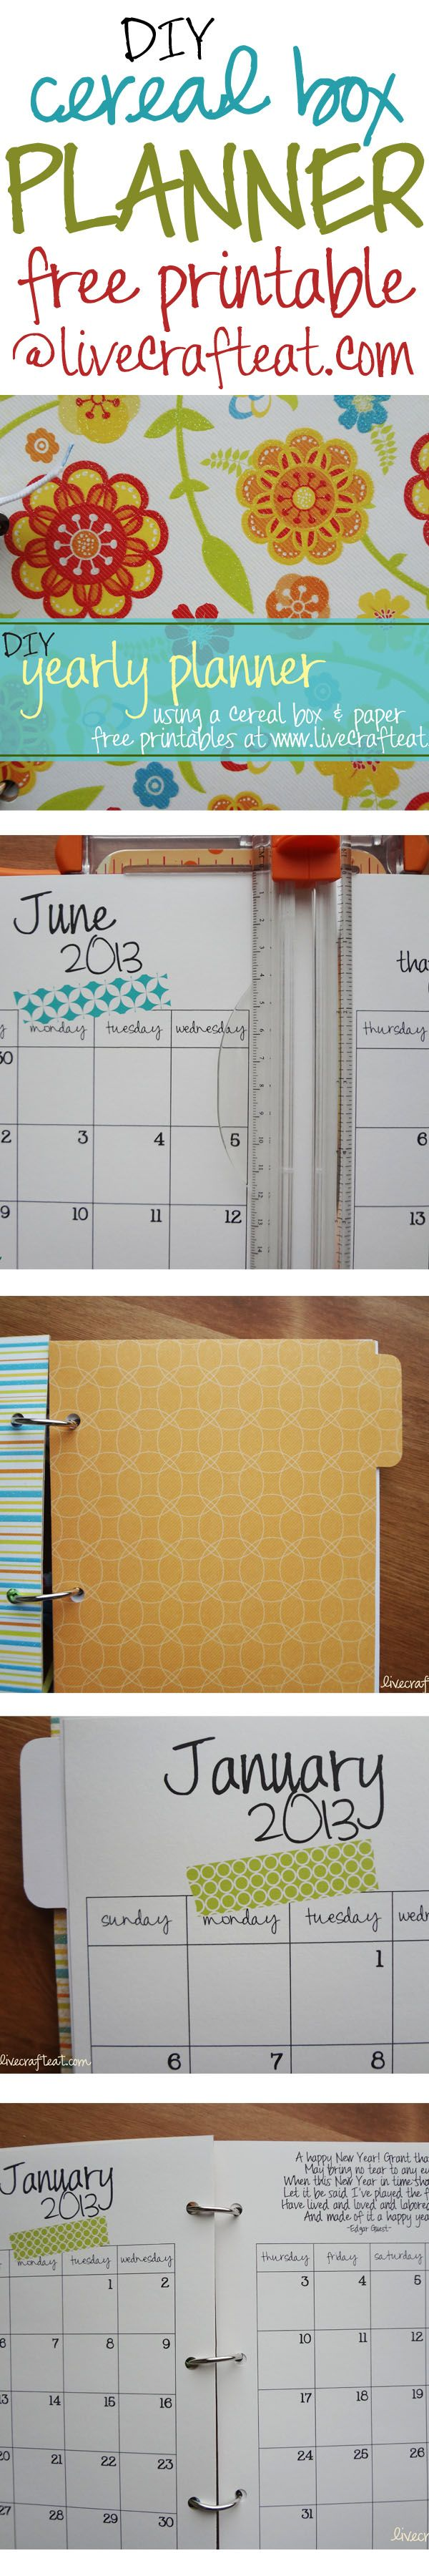 How to make your own planner using a cereal box and for Build your own planner